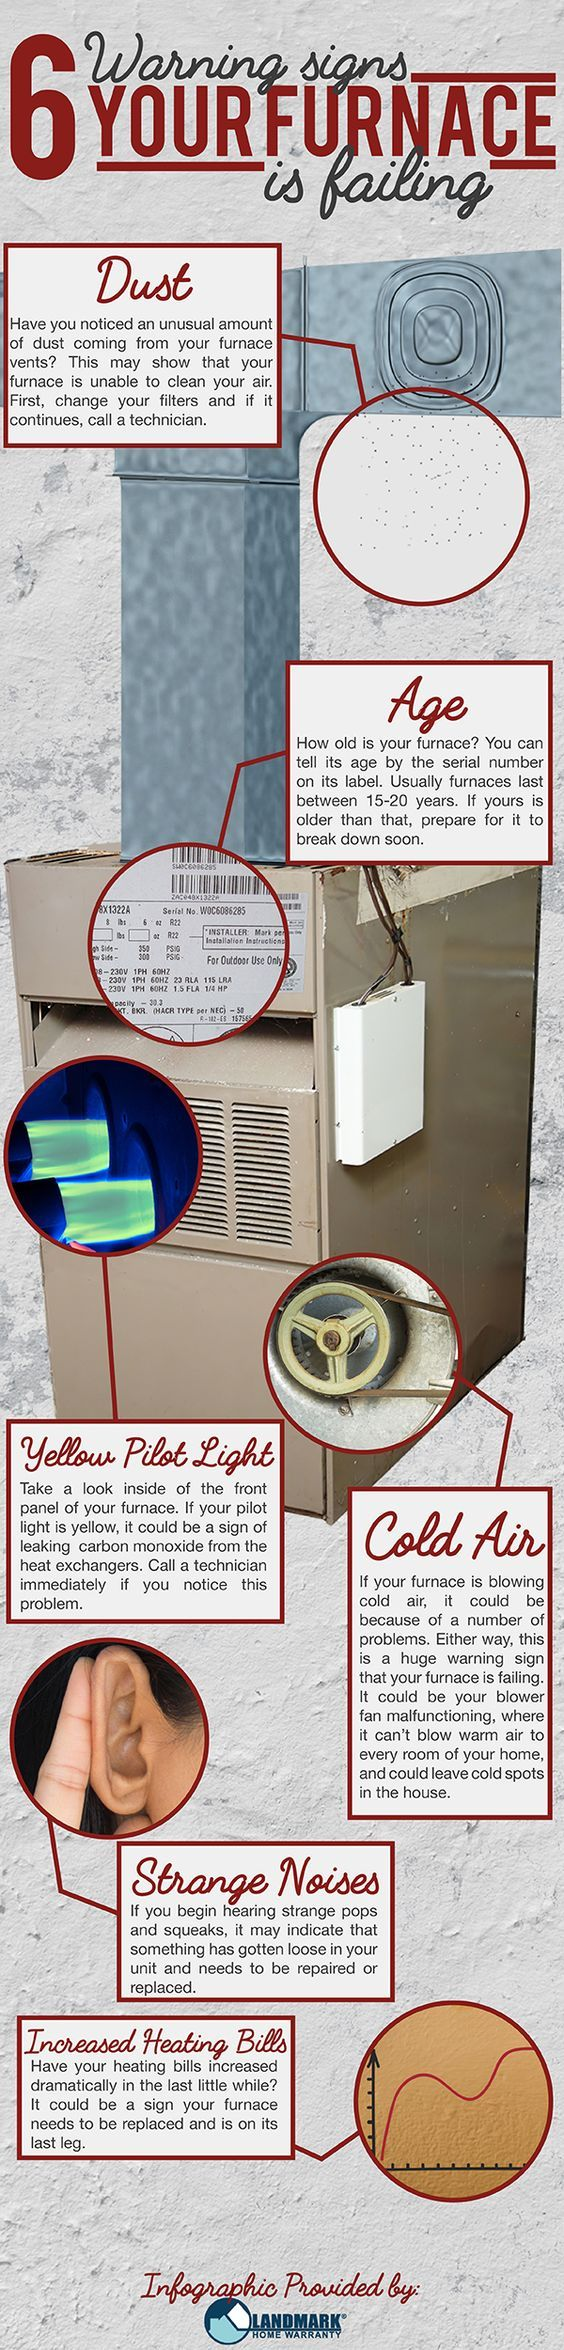 Warning Signs Your Furnace Is Failing (infographic)